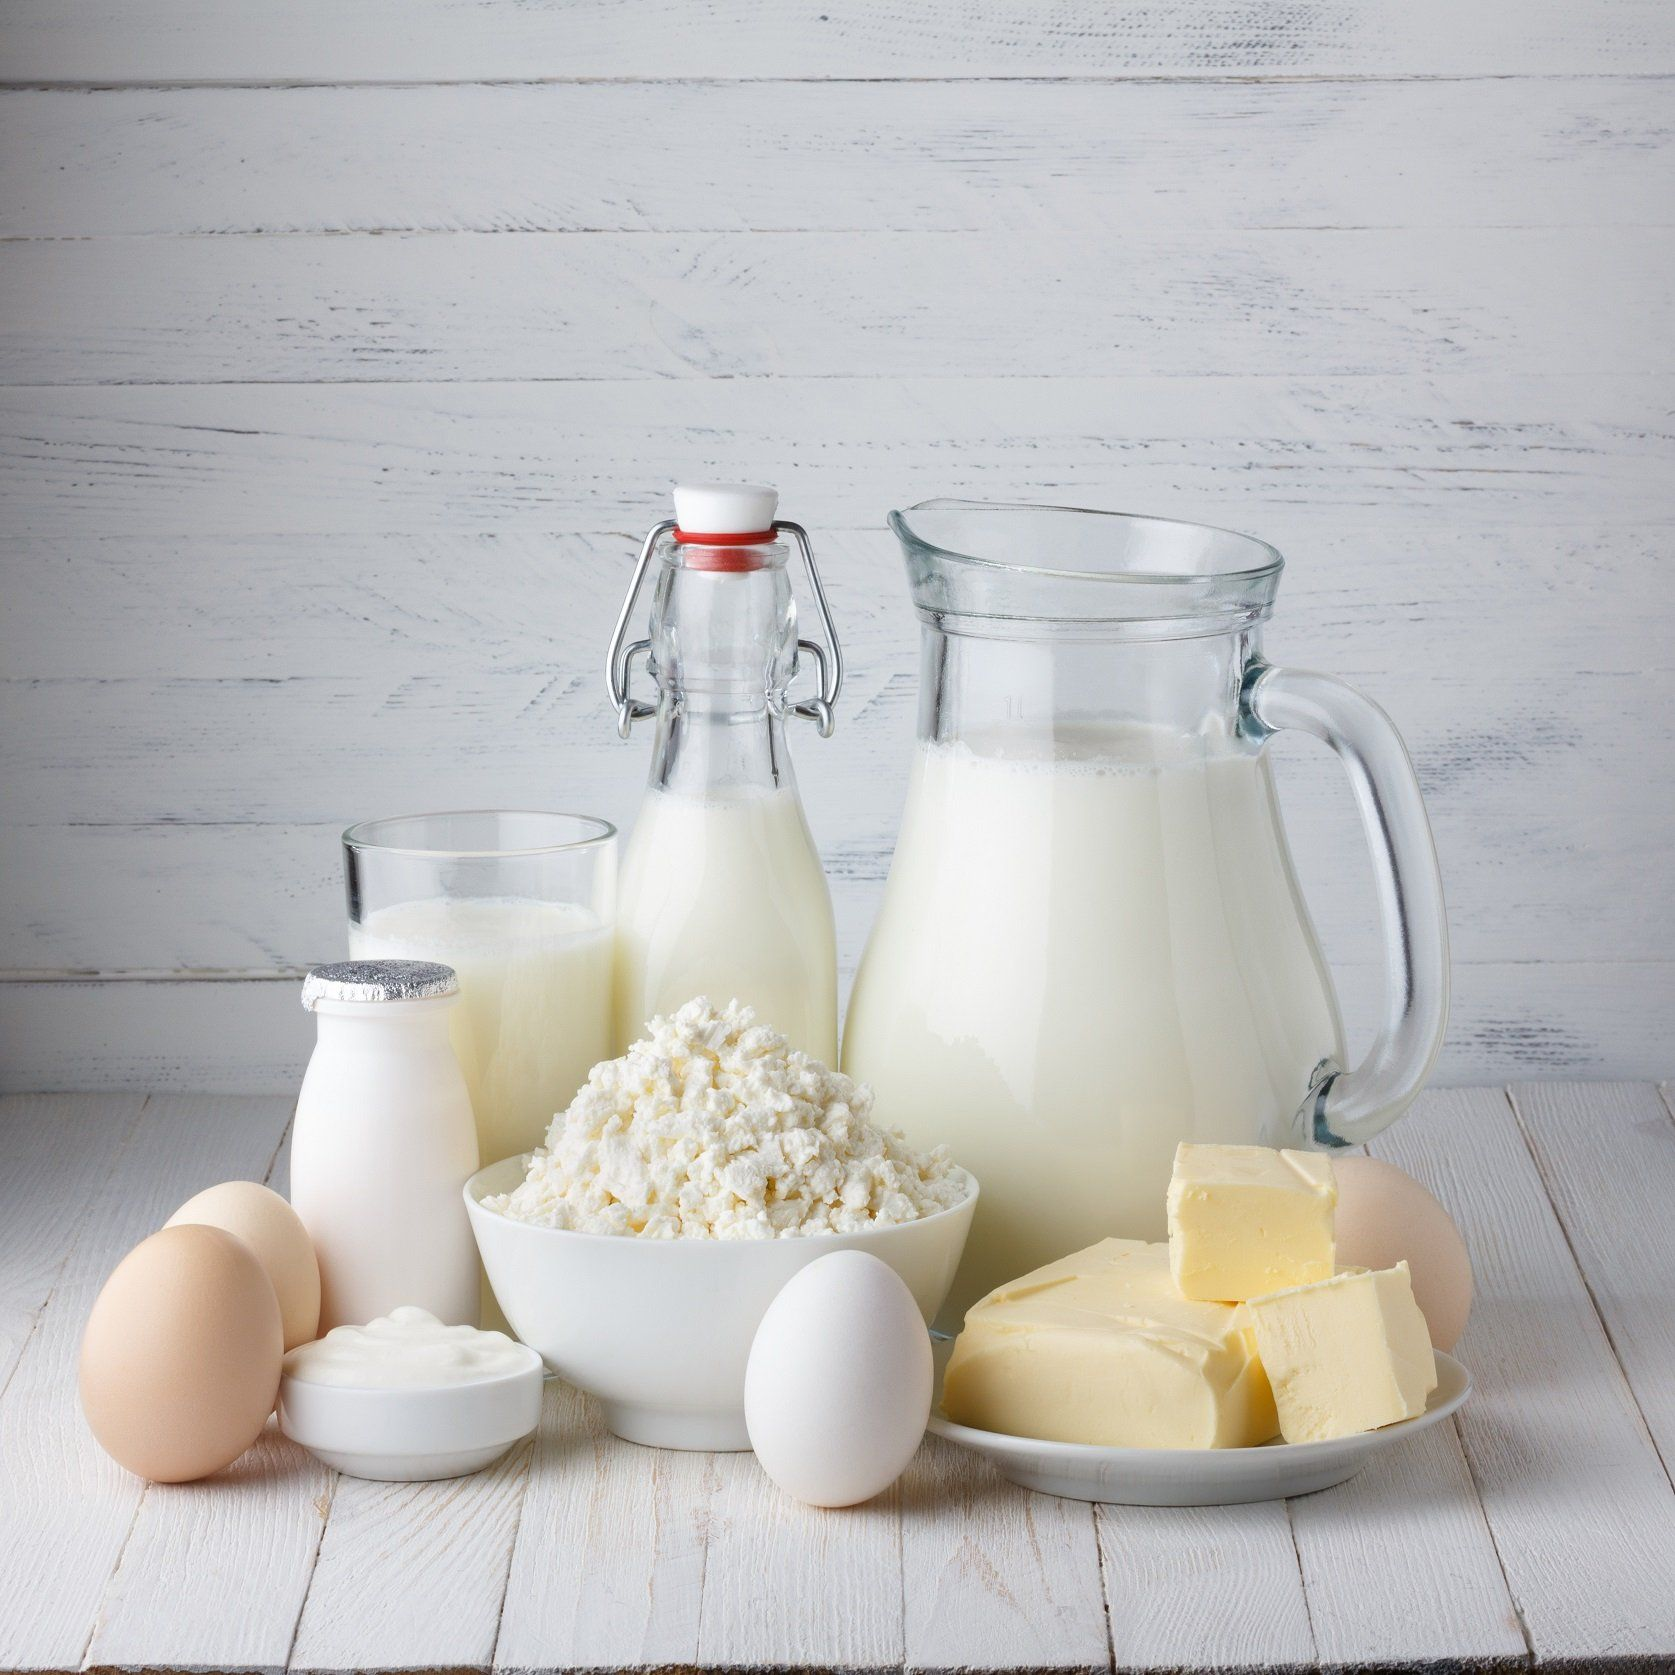 Dairy, Cheeses & Eggs